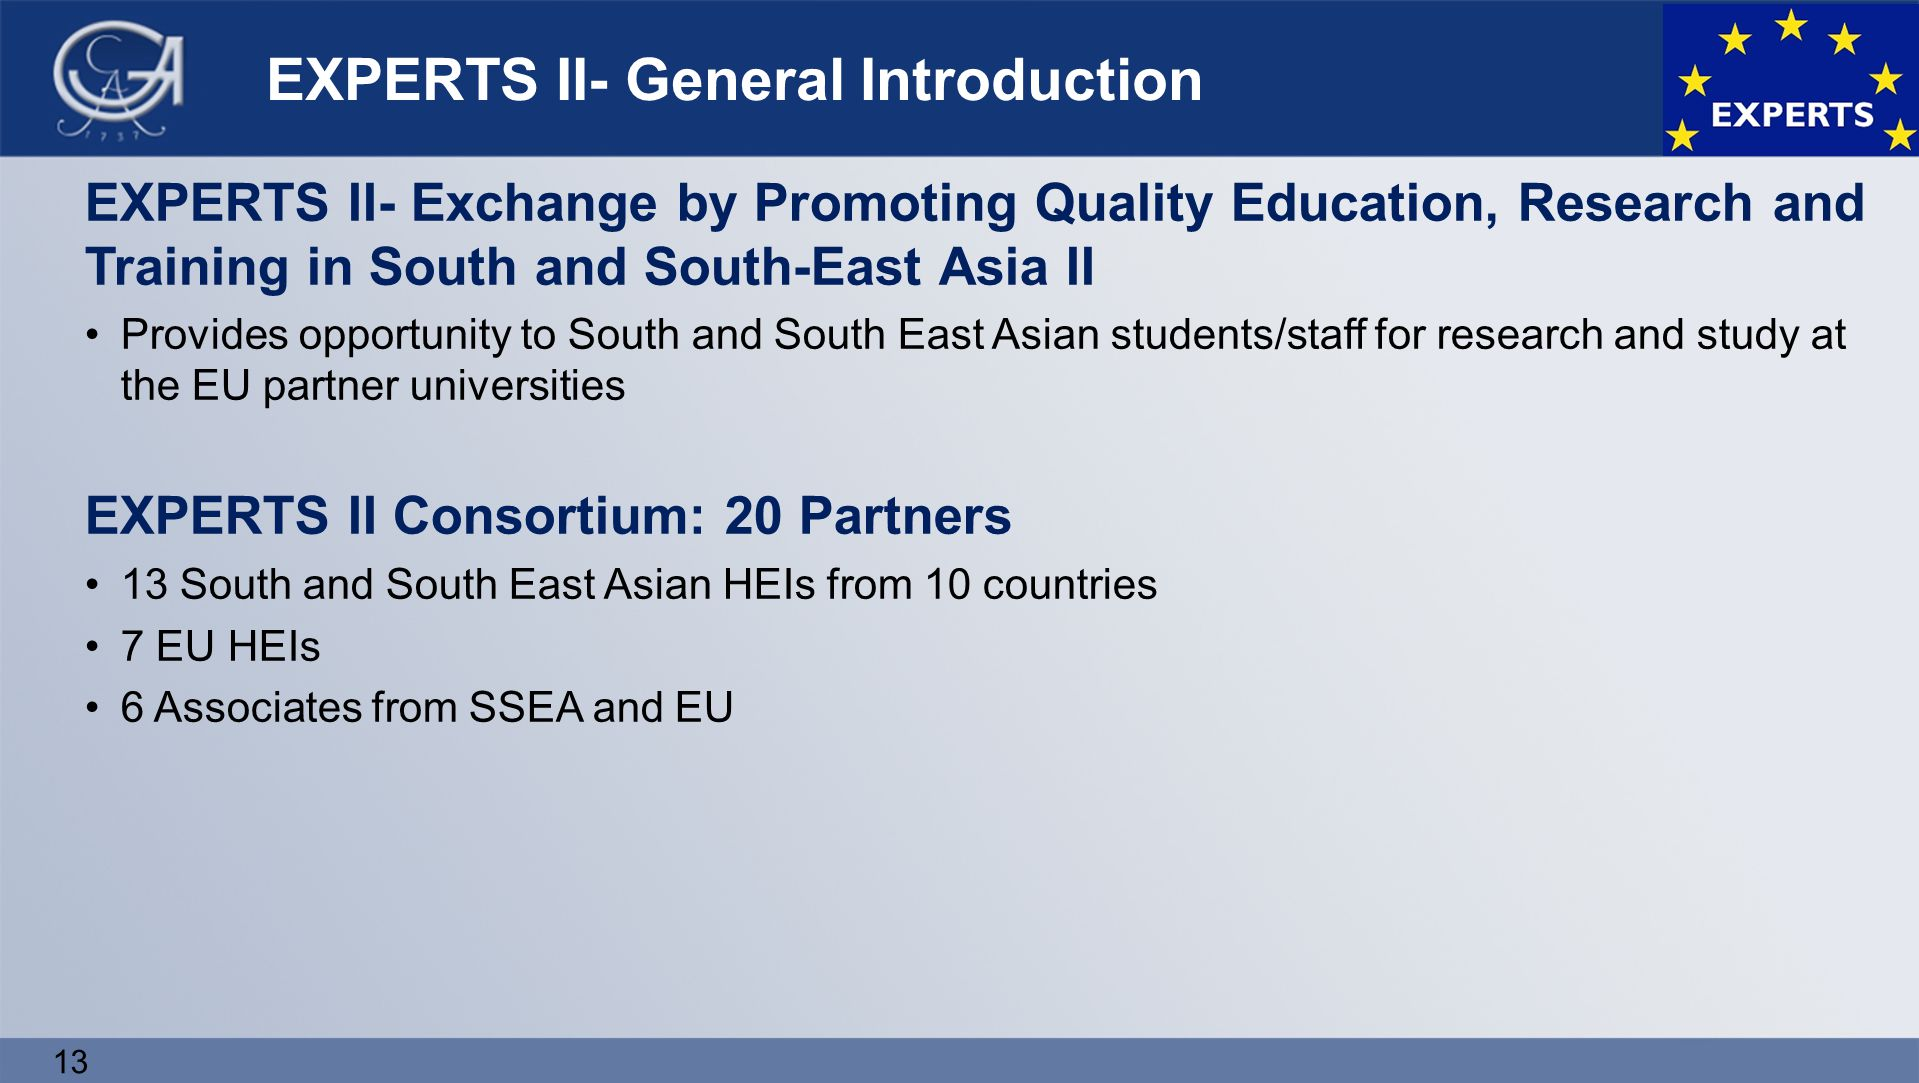 13 EXPERTS II- General Introduction EXPERTS II- Exchange by Promoting Quality Education, Research and Training in South and South-East Asia II Provides opportunity to South and South East Asian students/staff for research and study at the EU partner universities EXPERTS II Consortium: 20 Partners 13 South and South East Asian HEIs from 10 countries 7 EU HEIs 6 Associates from SSEA and EU